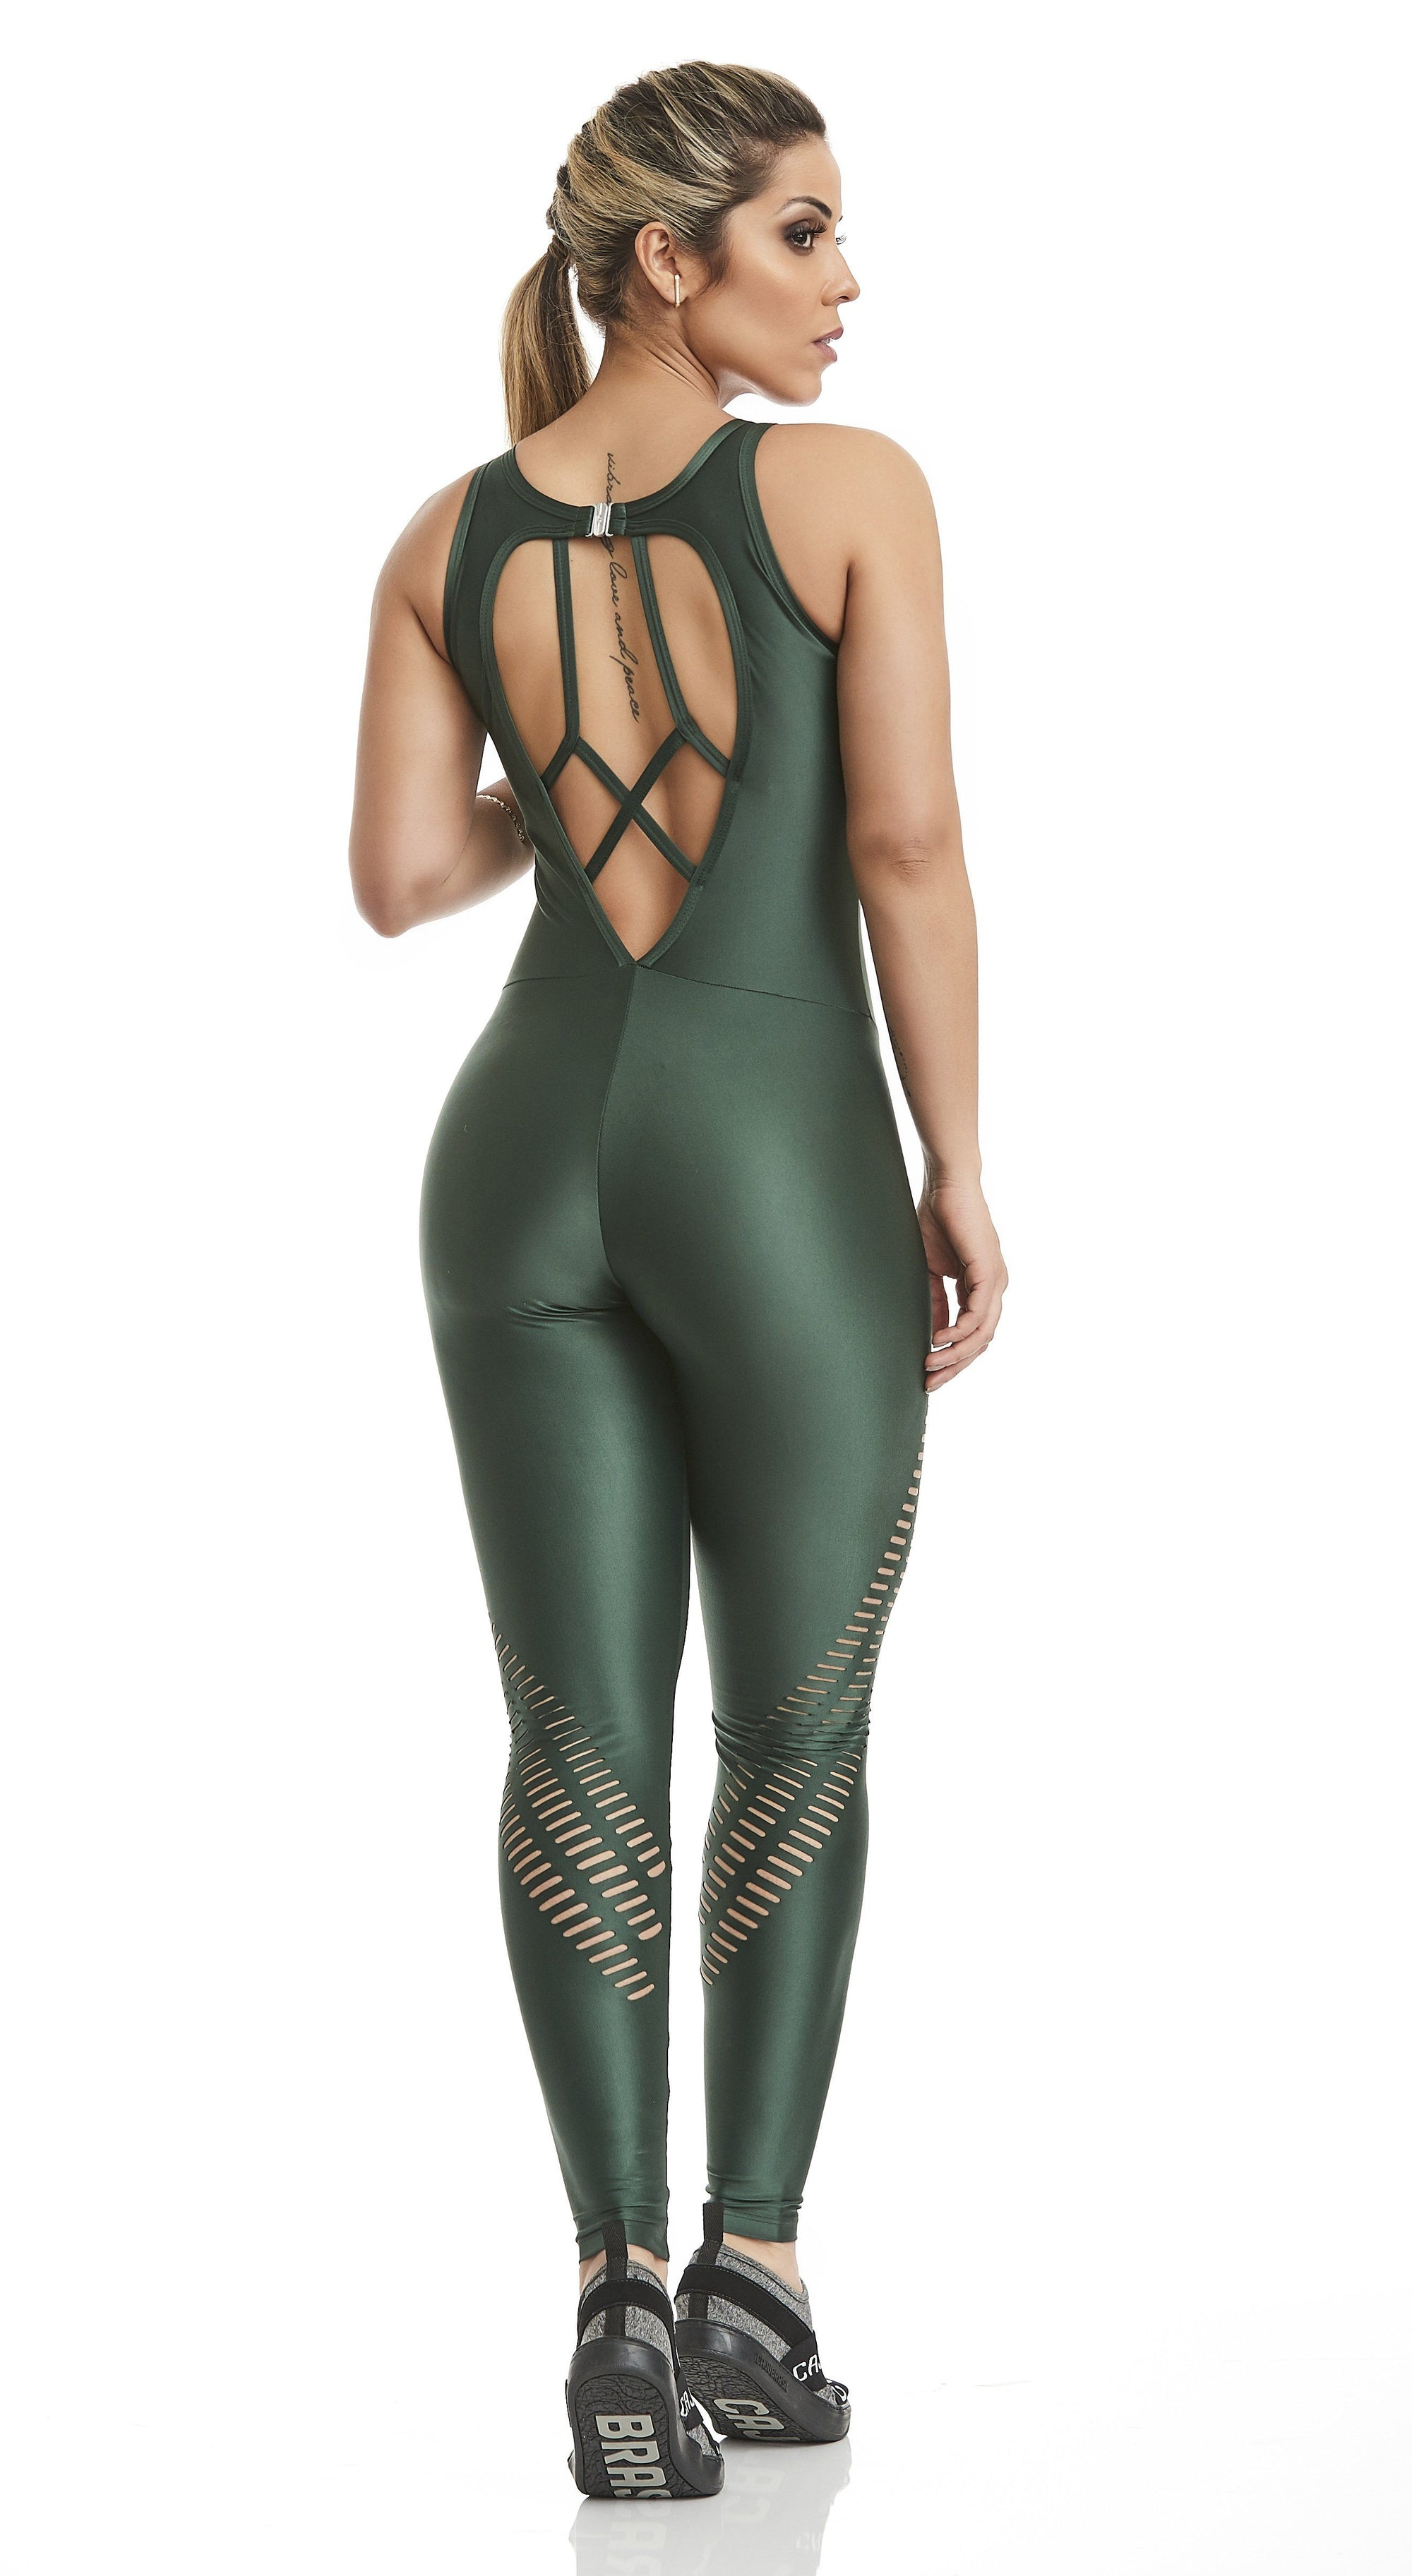 Brazilian Workout Jumpsuit - Atletika Power Laser Cut Green